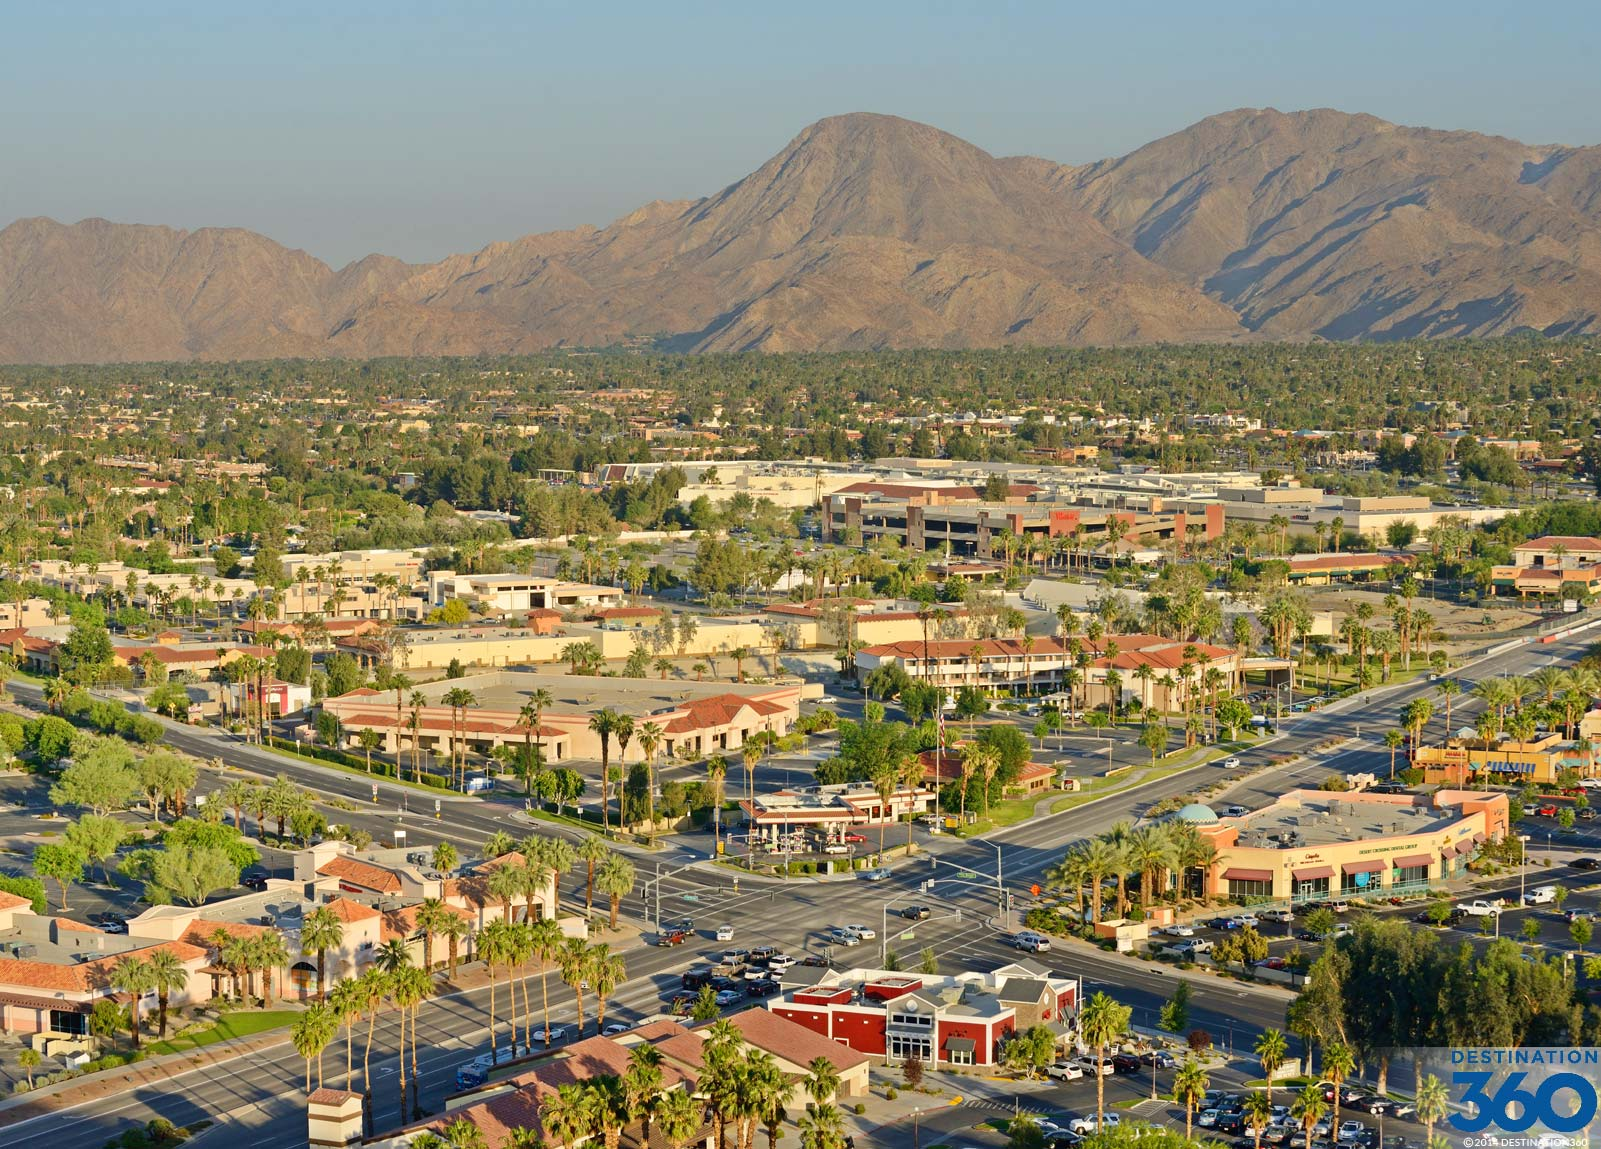 palm desert Choose from 212 palm desert hotels with huge savings enjoy activities like golfing and hiking in palm desert find hotels and other accommodations near desert willow golf resort and book today.